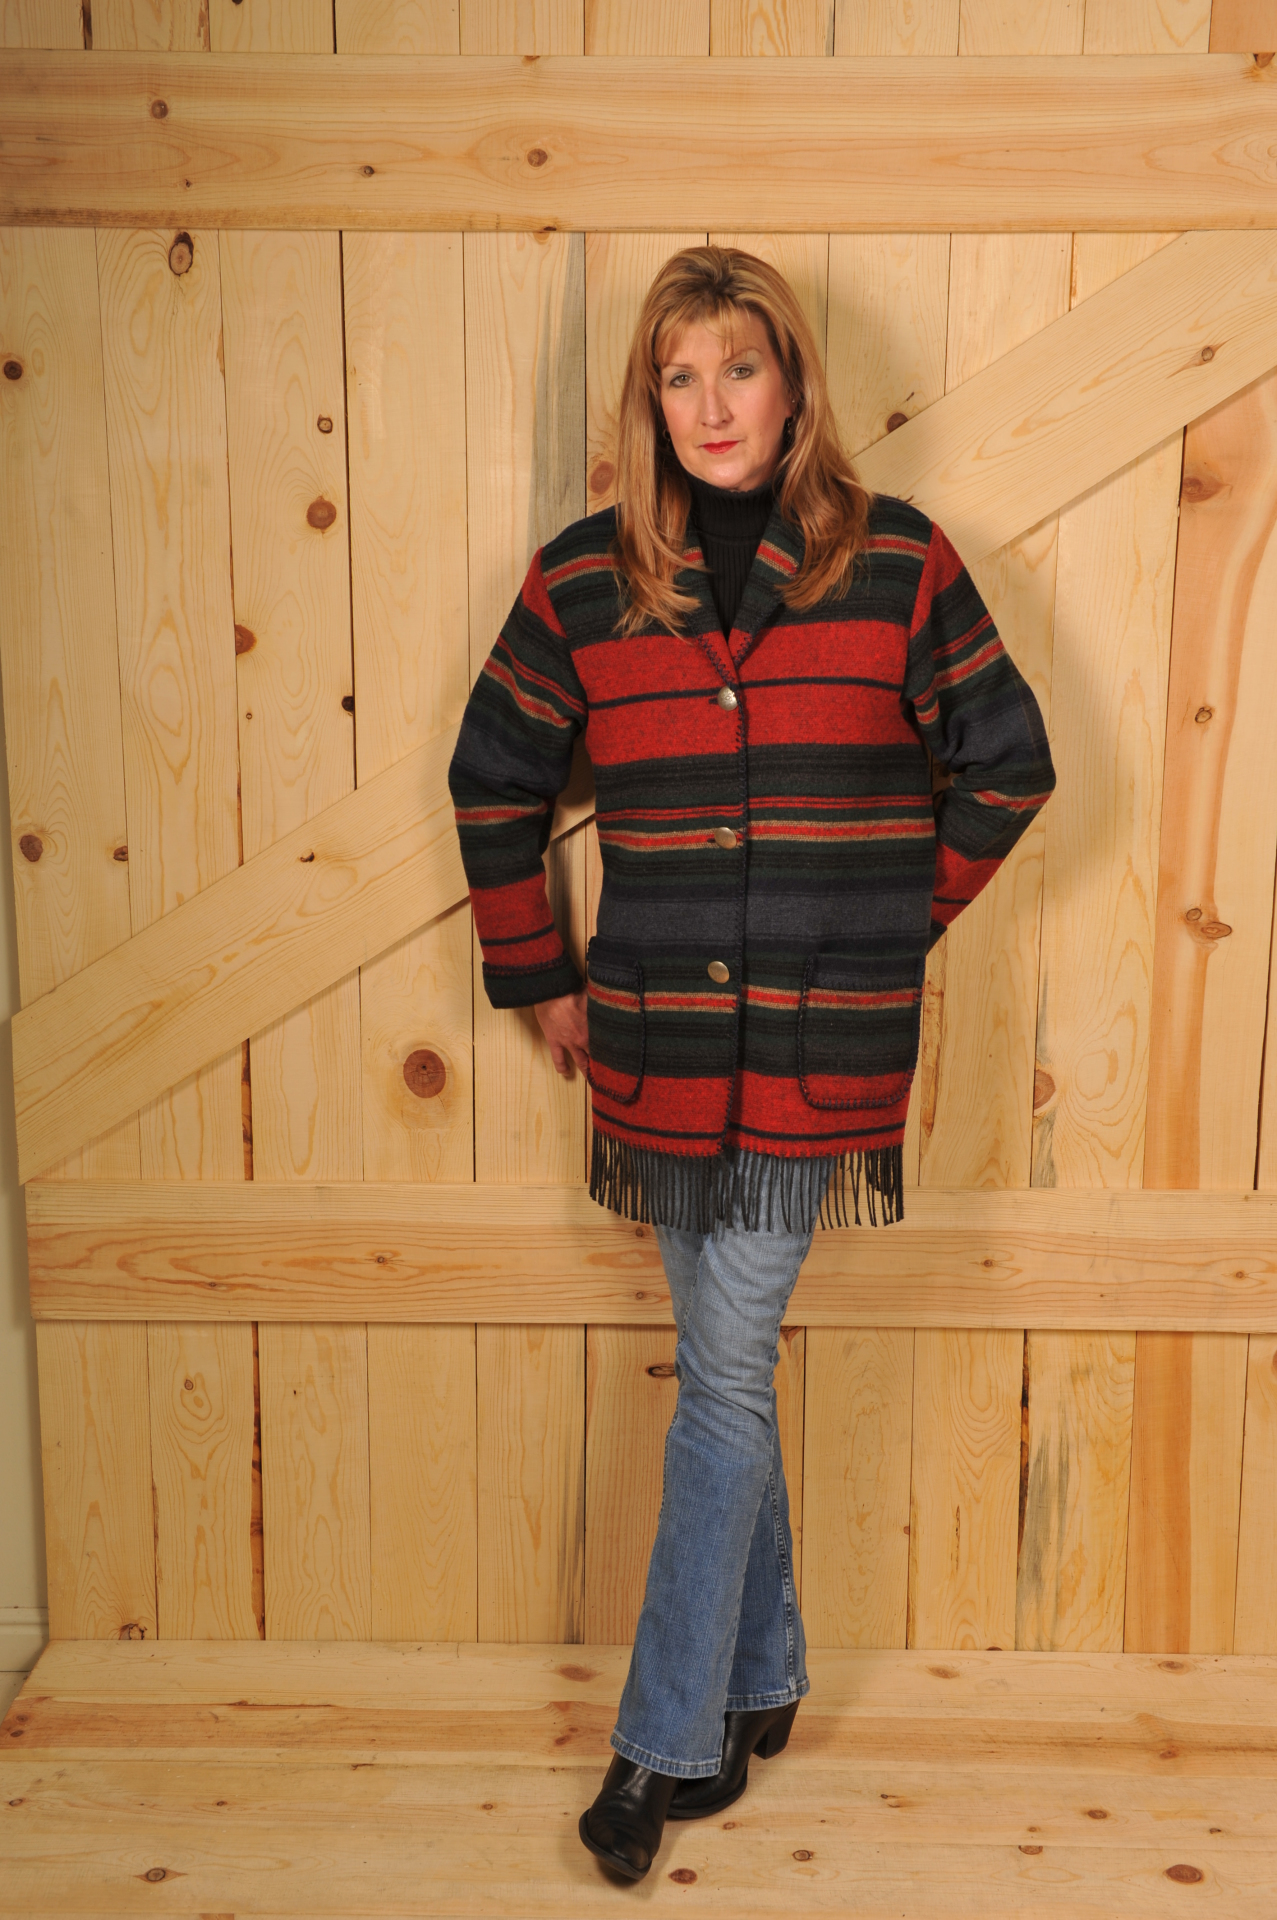 #875SNF NAVY SERAPE FRINGE CAR COAT - $179.95 - OUTLET SALE $50 - SMALL ONLY!